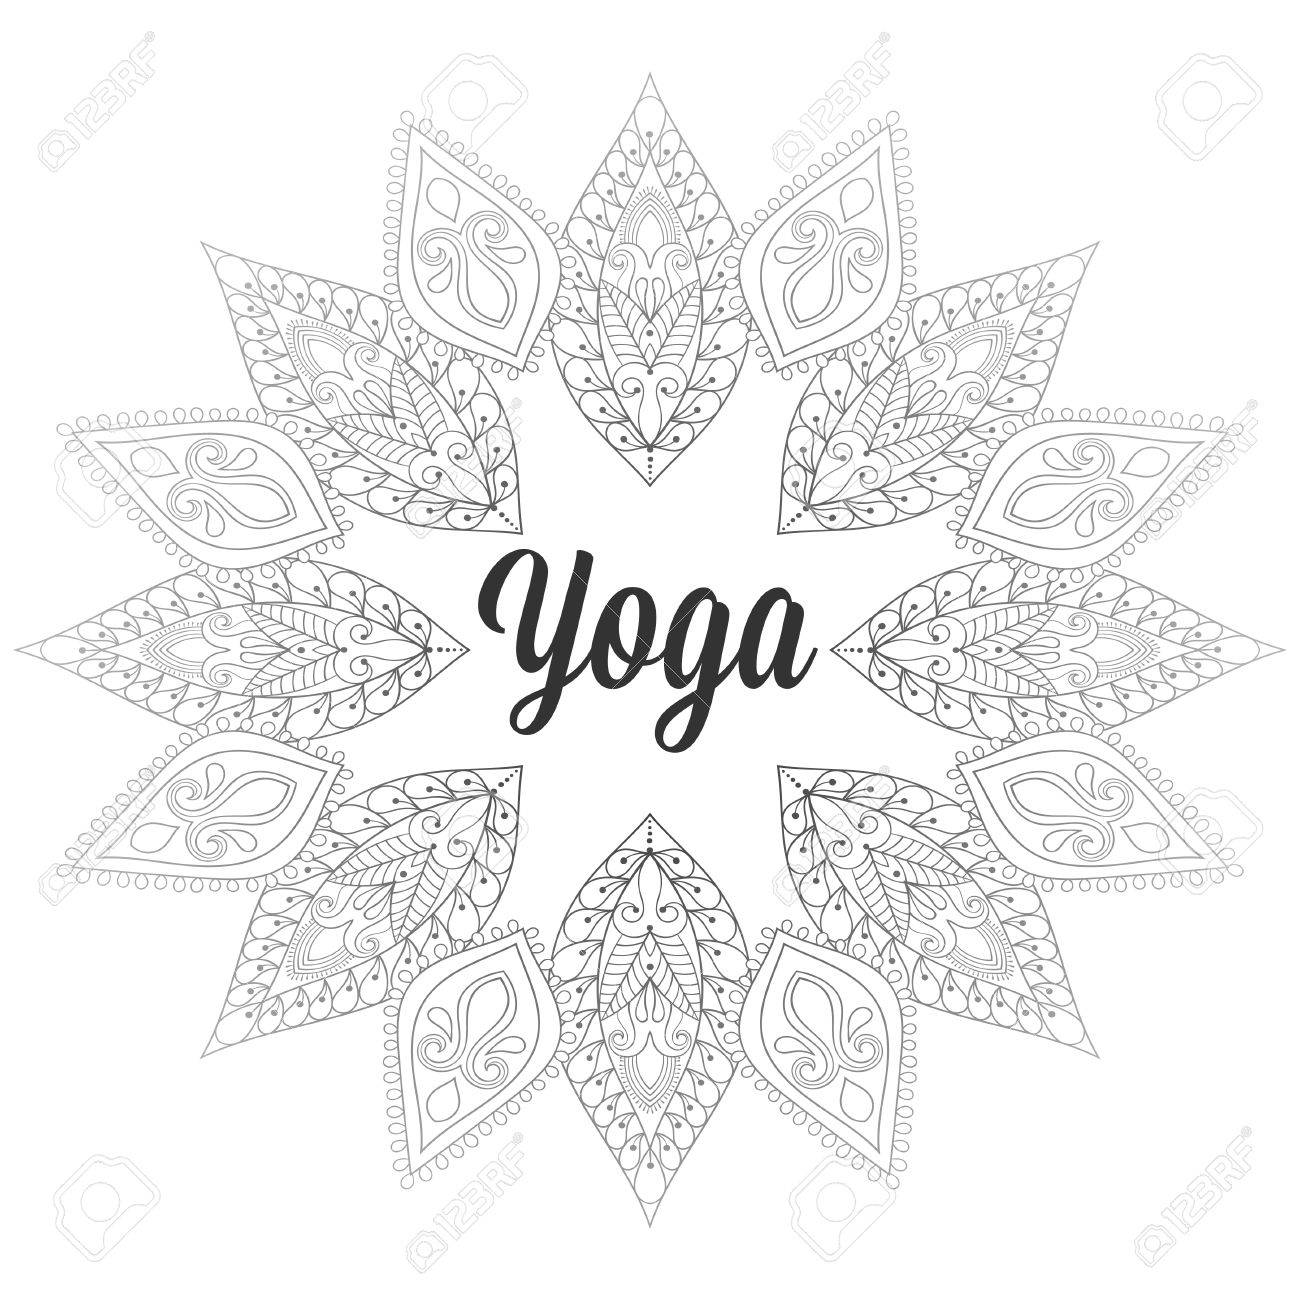 Yoga Monochrome Designtemplate Emblem With Leaves And Flowers